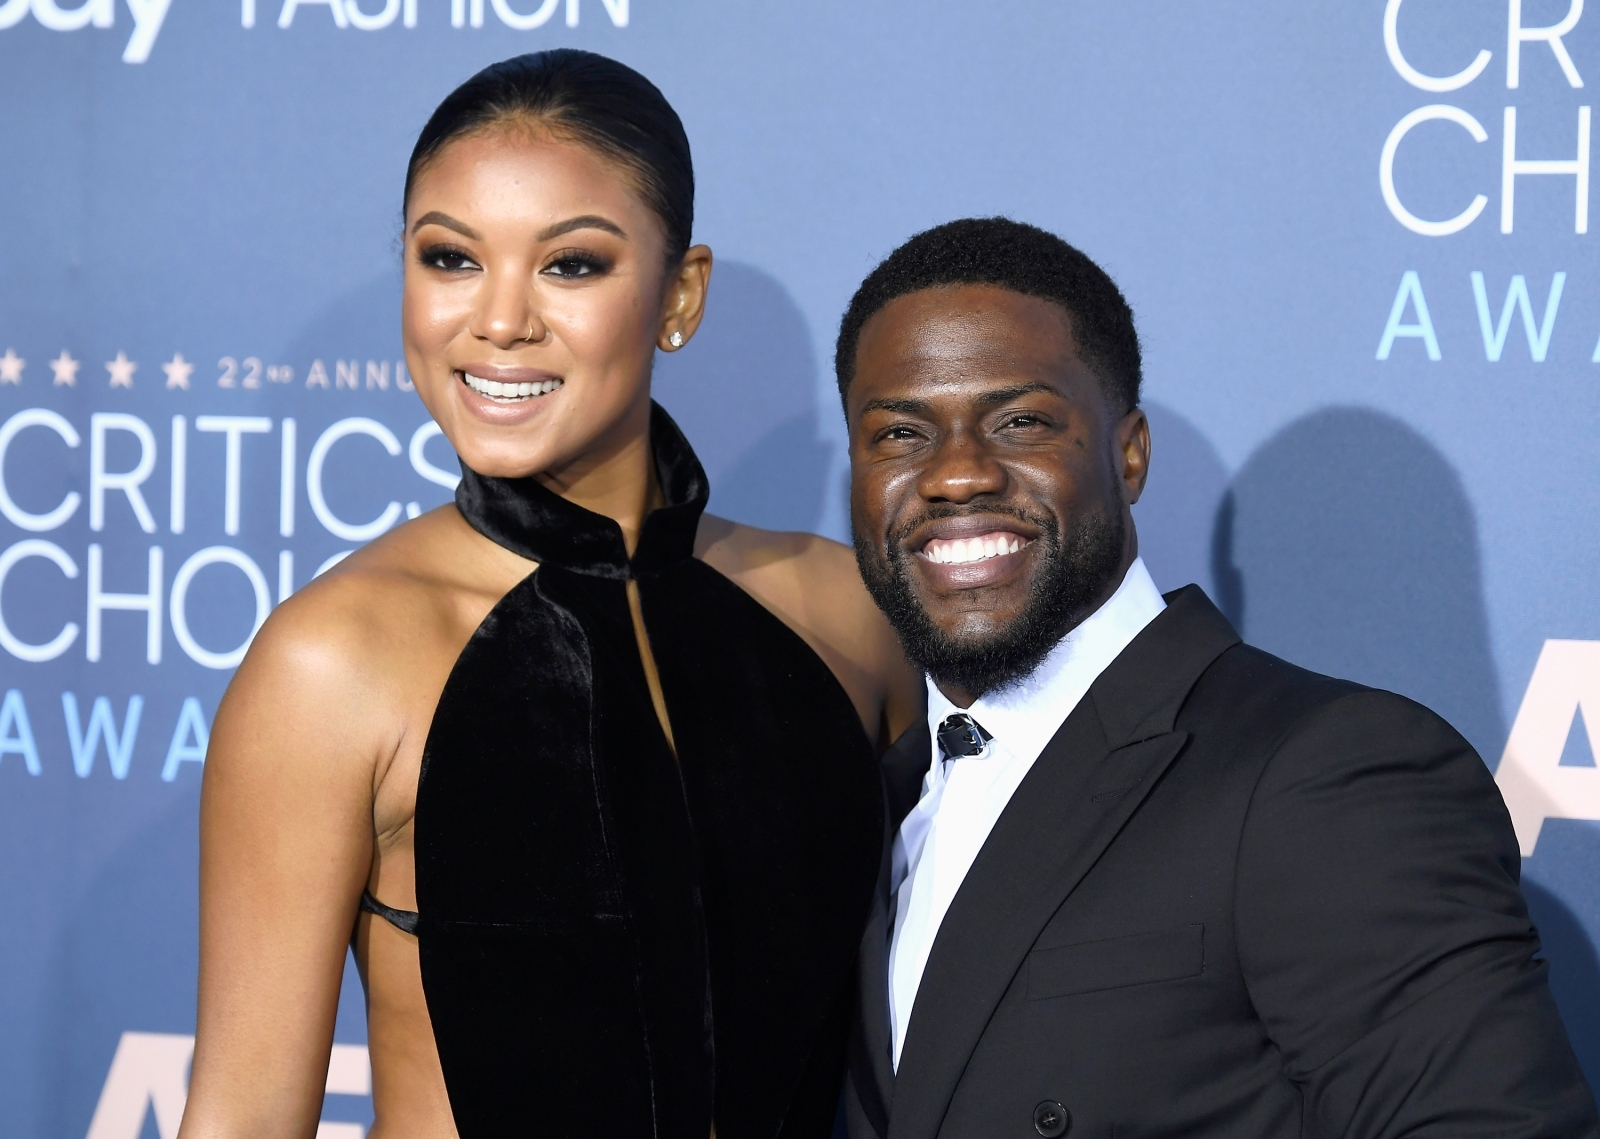 Kevin Hart reacts to claims he cheated on pregnant wife Eniko Parrish in Miami rendezvous